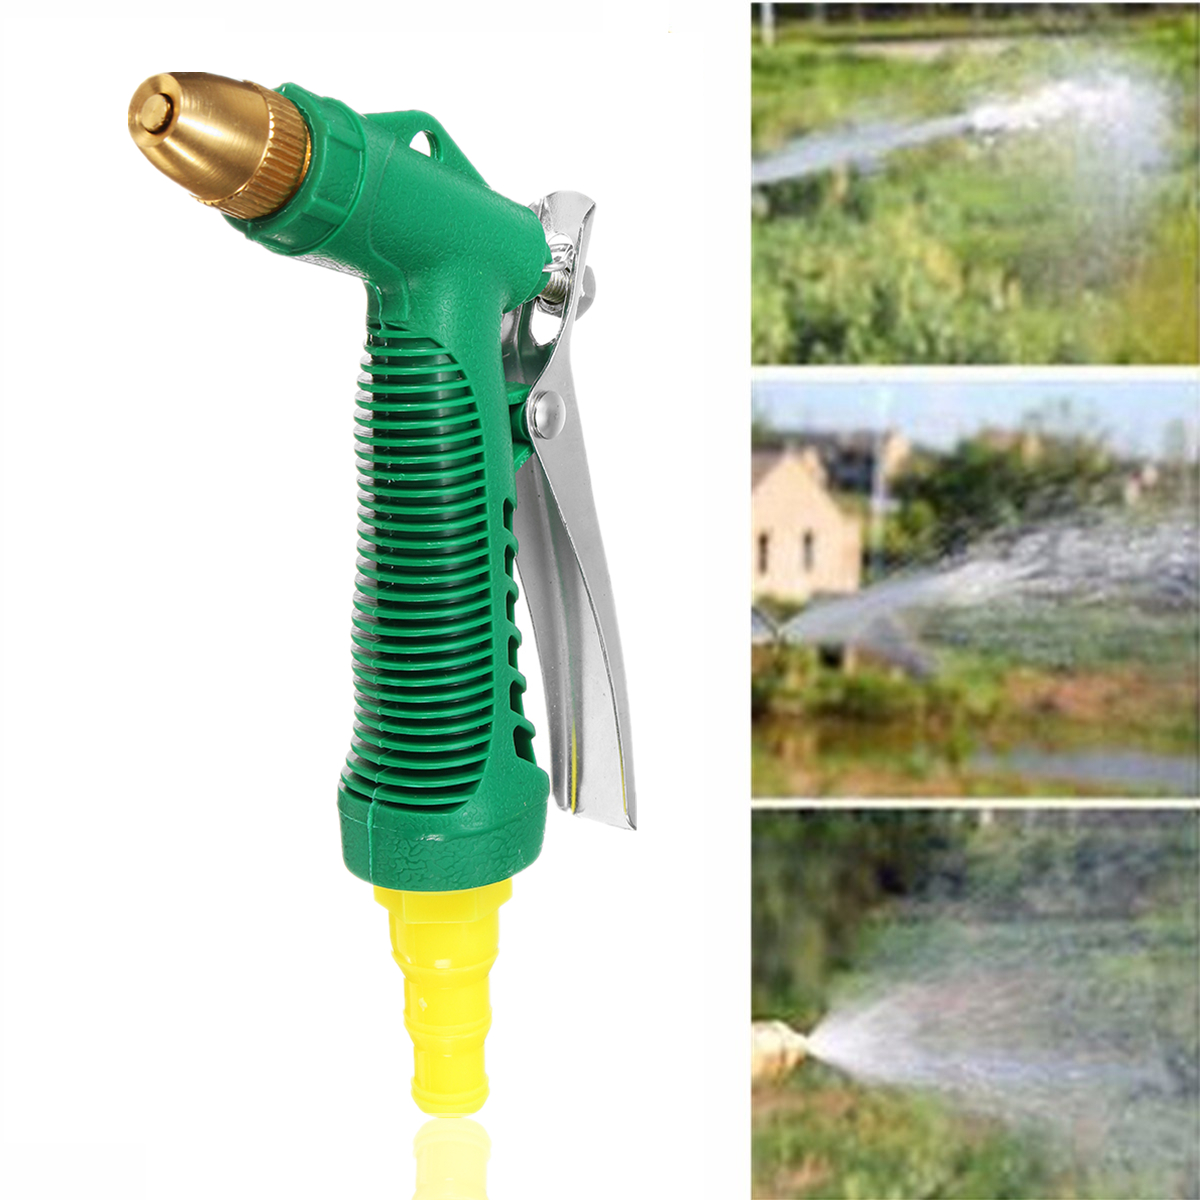 Copper Adjustable High Pressure Car Washing Water for Gun Head Garden Household Washing Cleaning